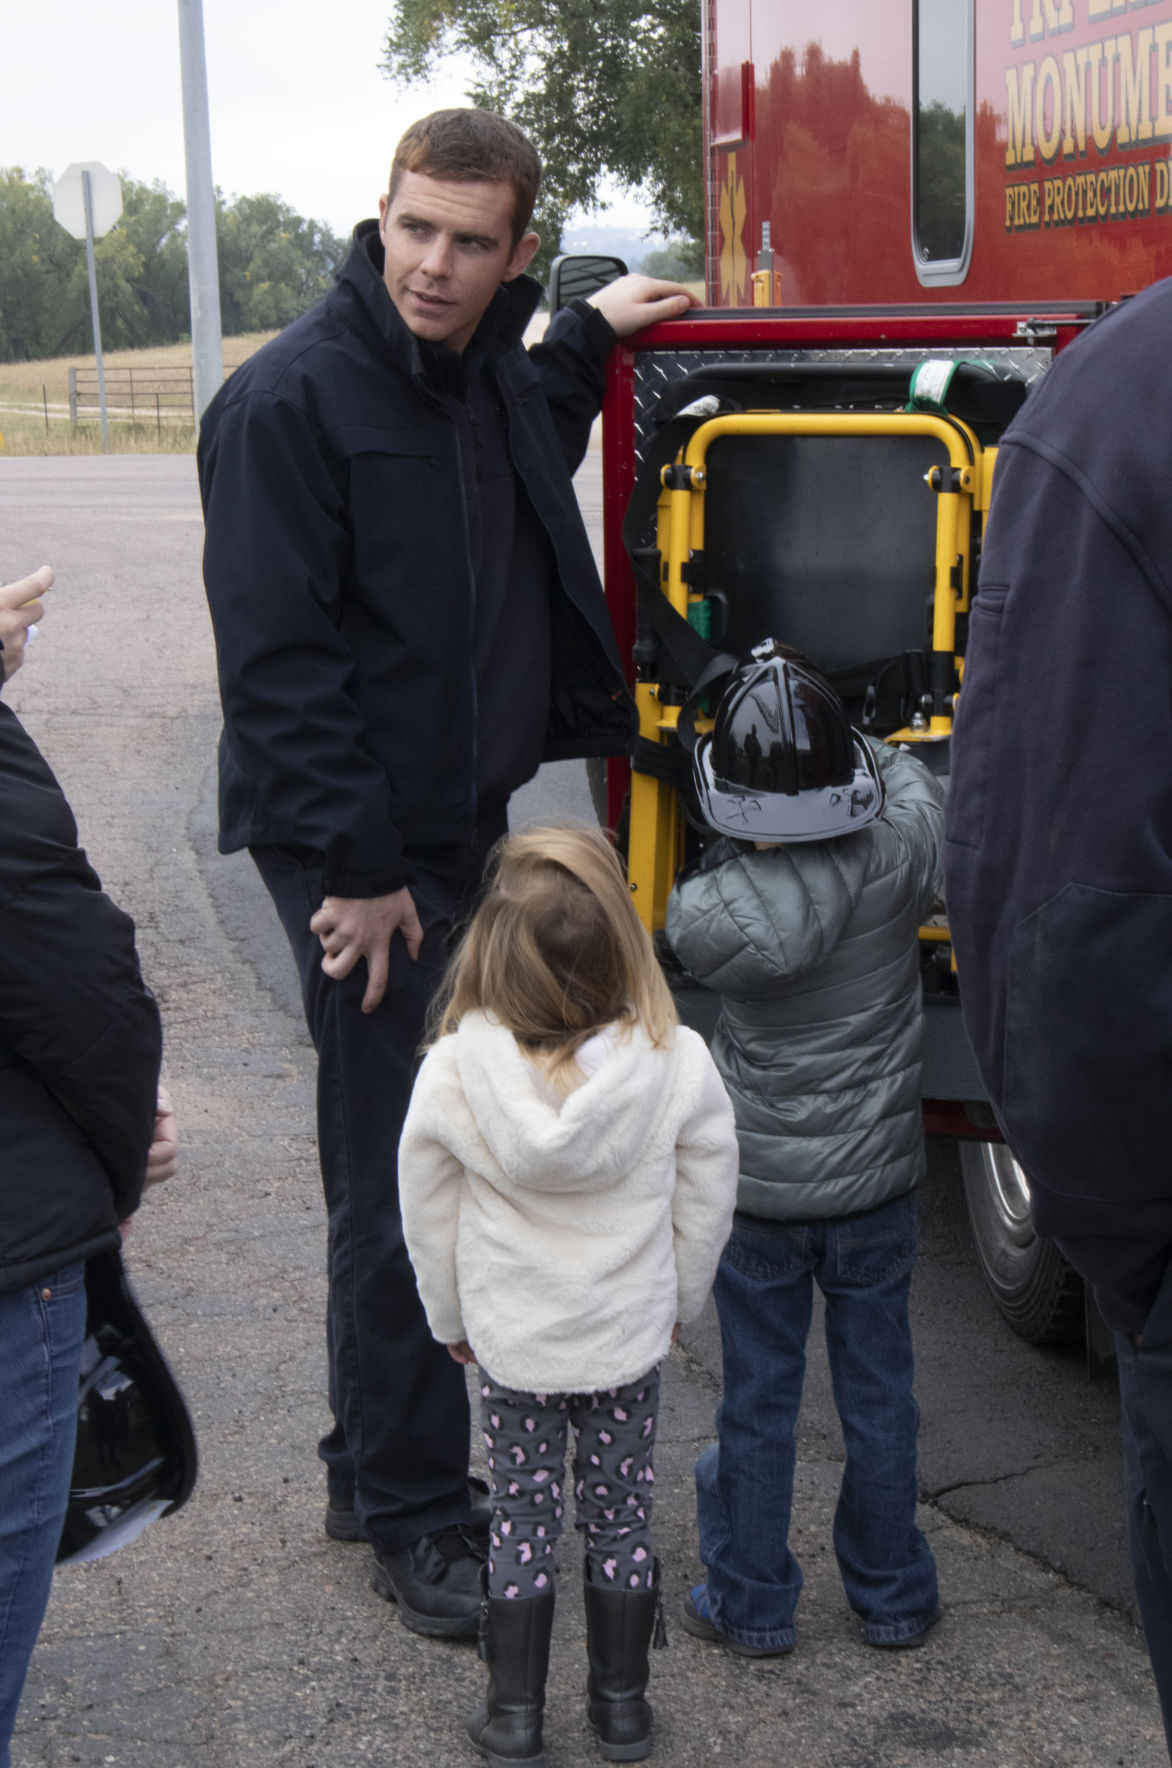 Snapshots: Tri-Lakes Monument Fire Protection District Station open house